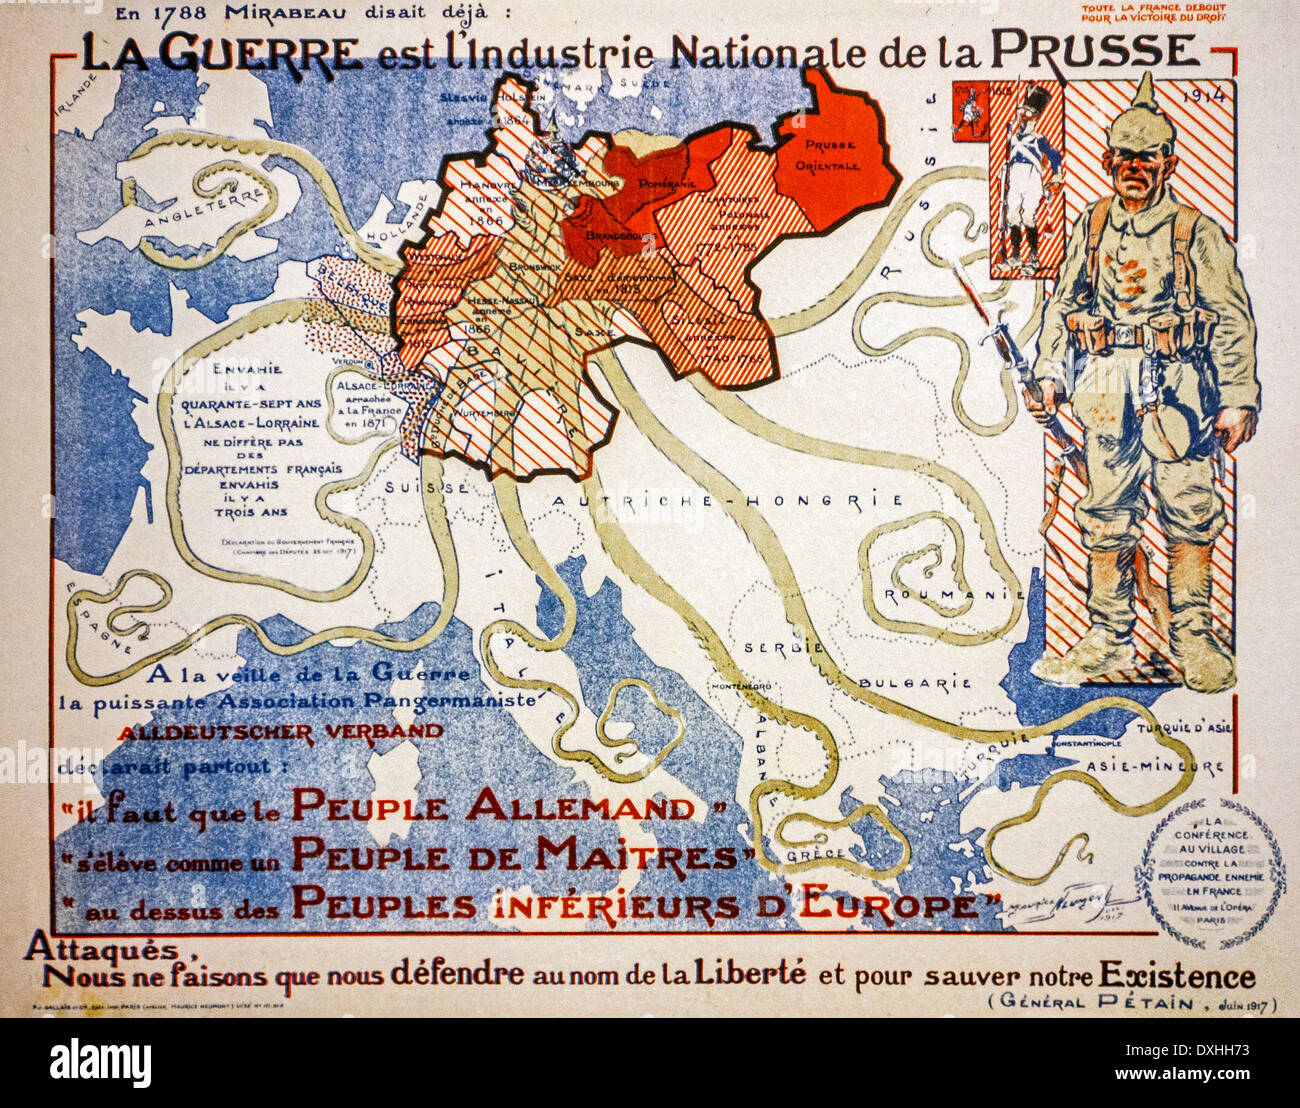 french vintage ww1 propaganda map from 1917 showing german invasion as giant octopus during the first